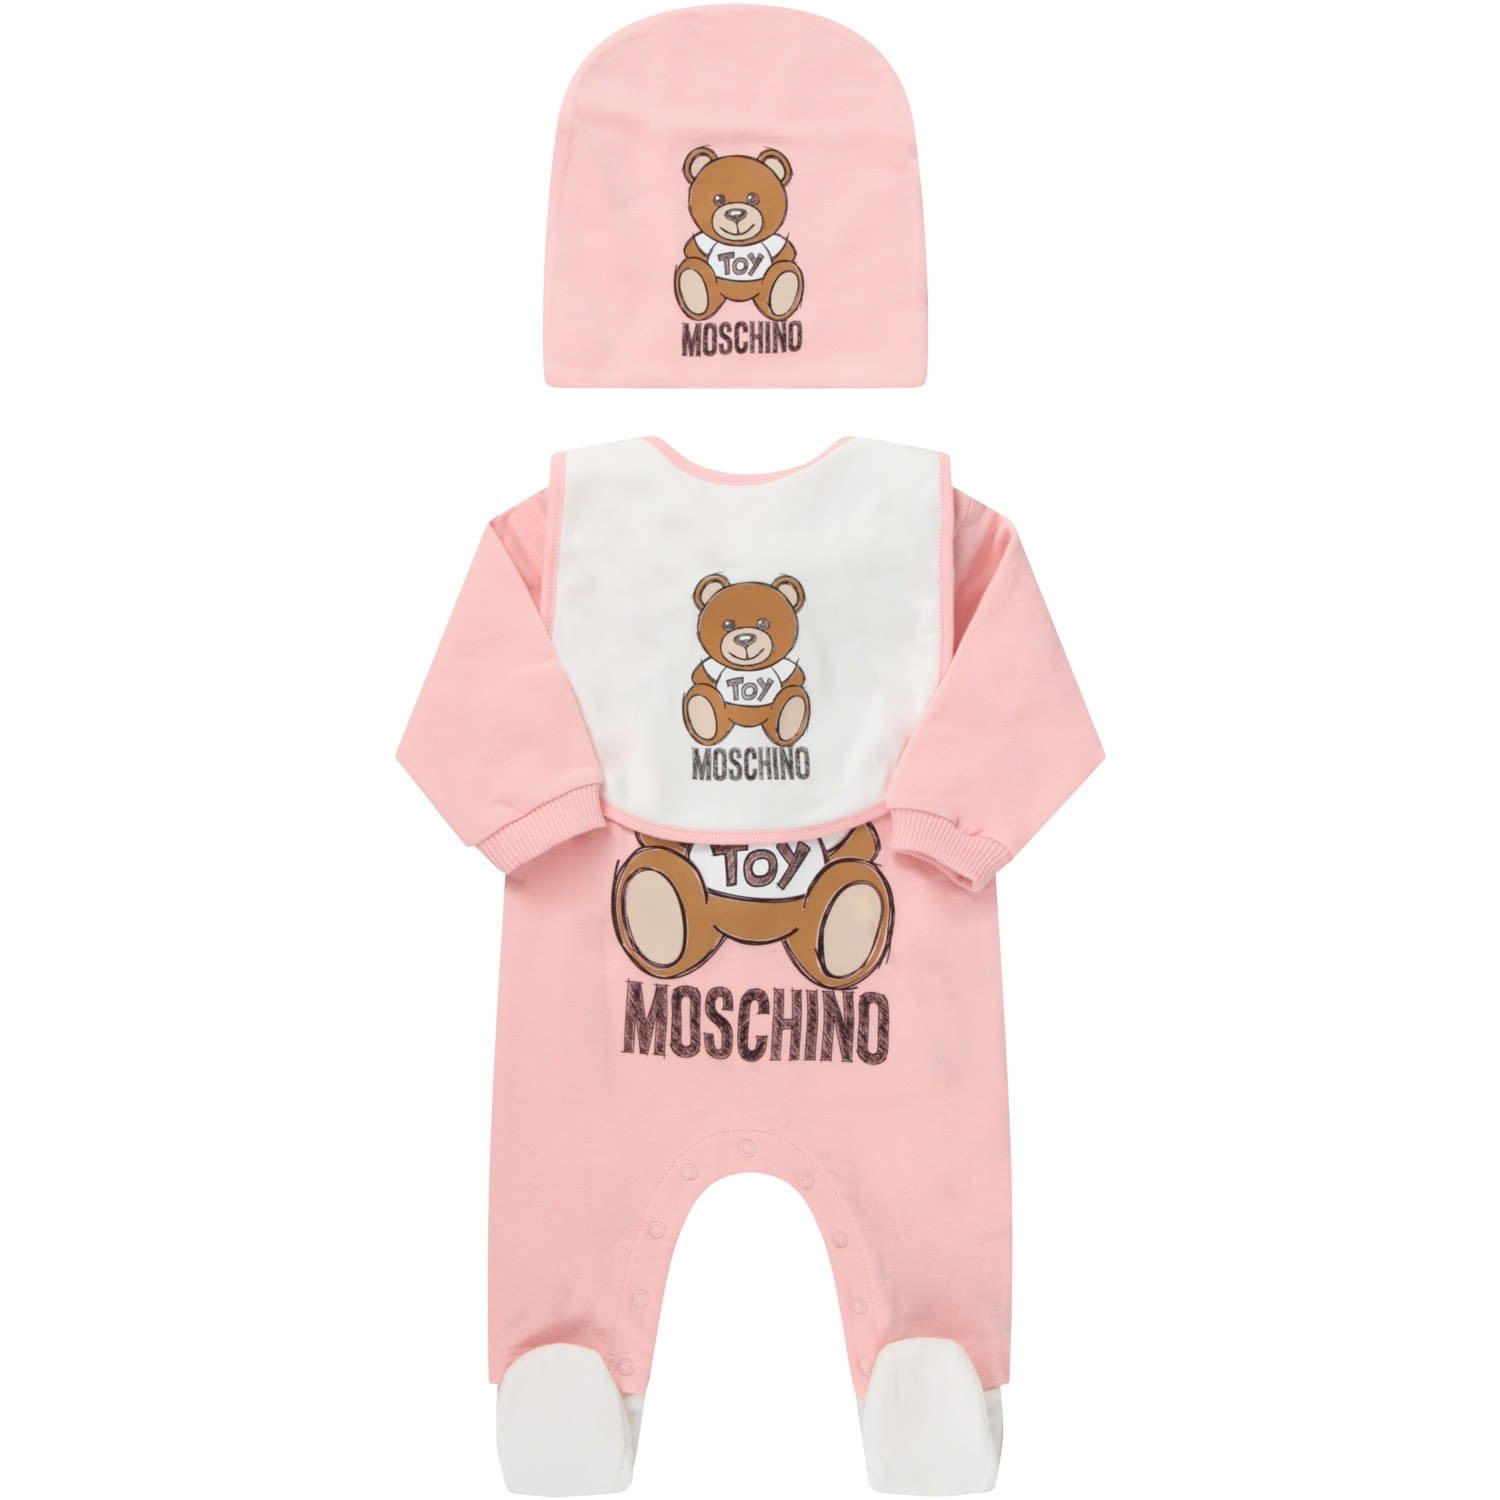 Moschino PINK SET FOR BABYGIRL WITH TEDDY BEAR